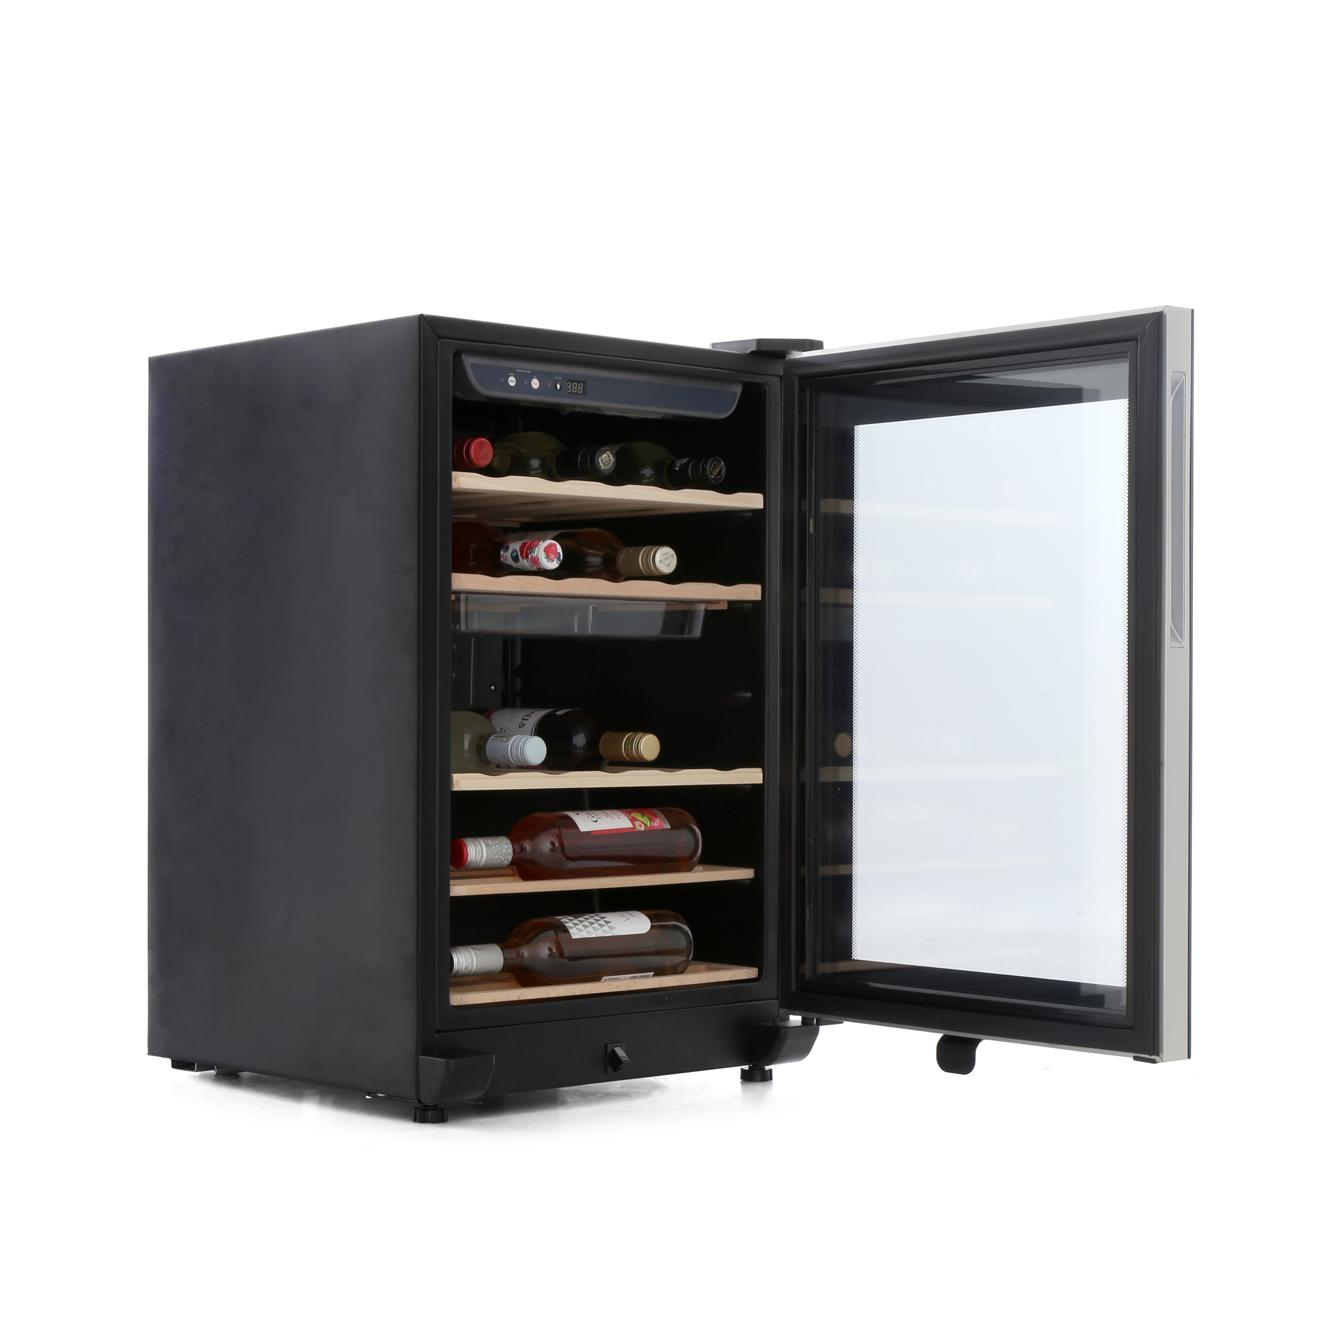 Dome 24 Bottle Wine Fridge Manual